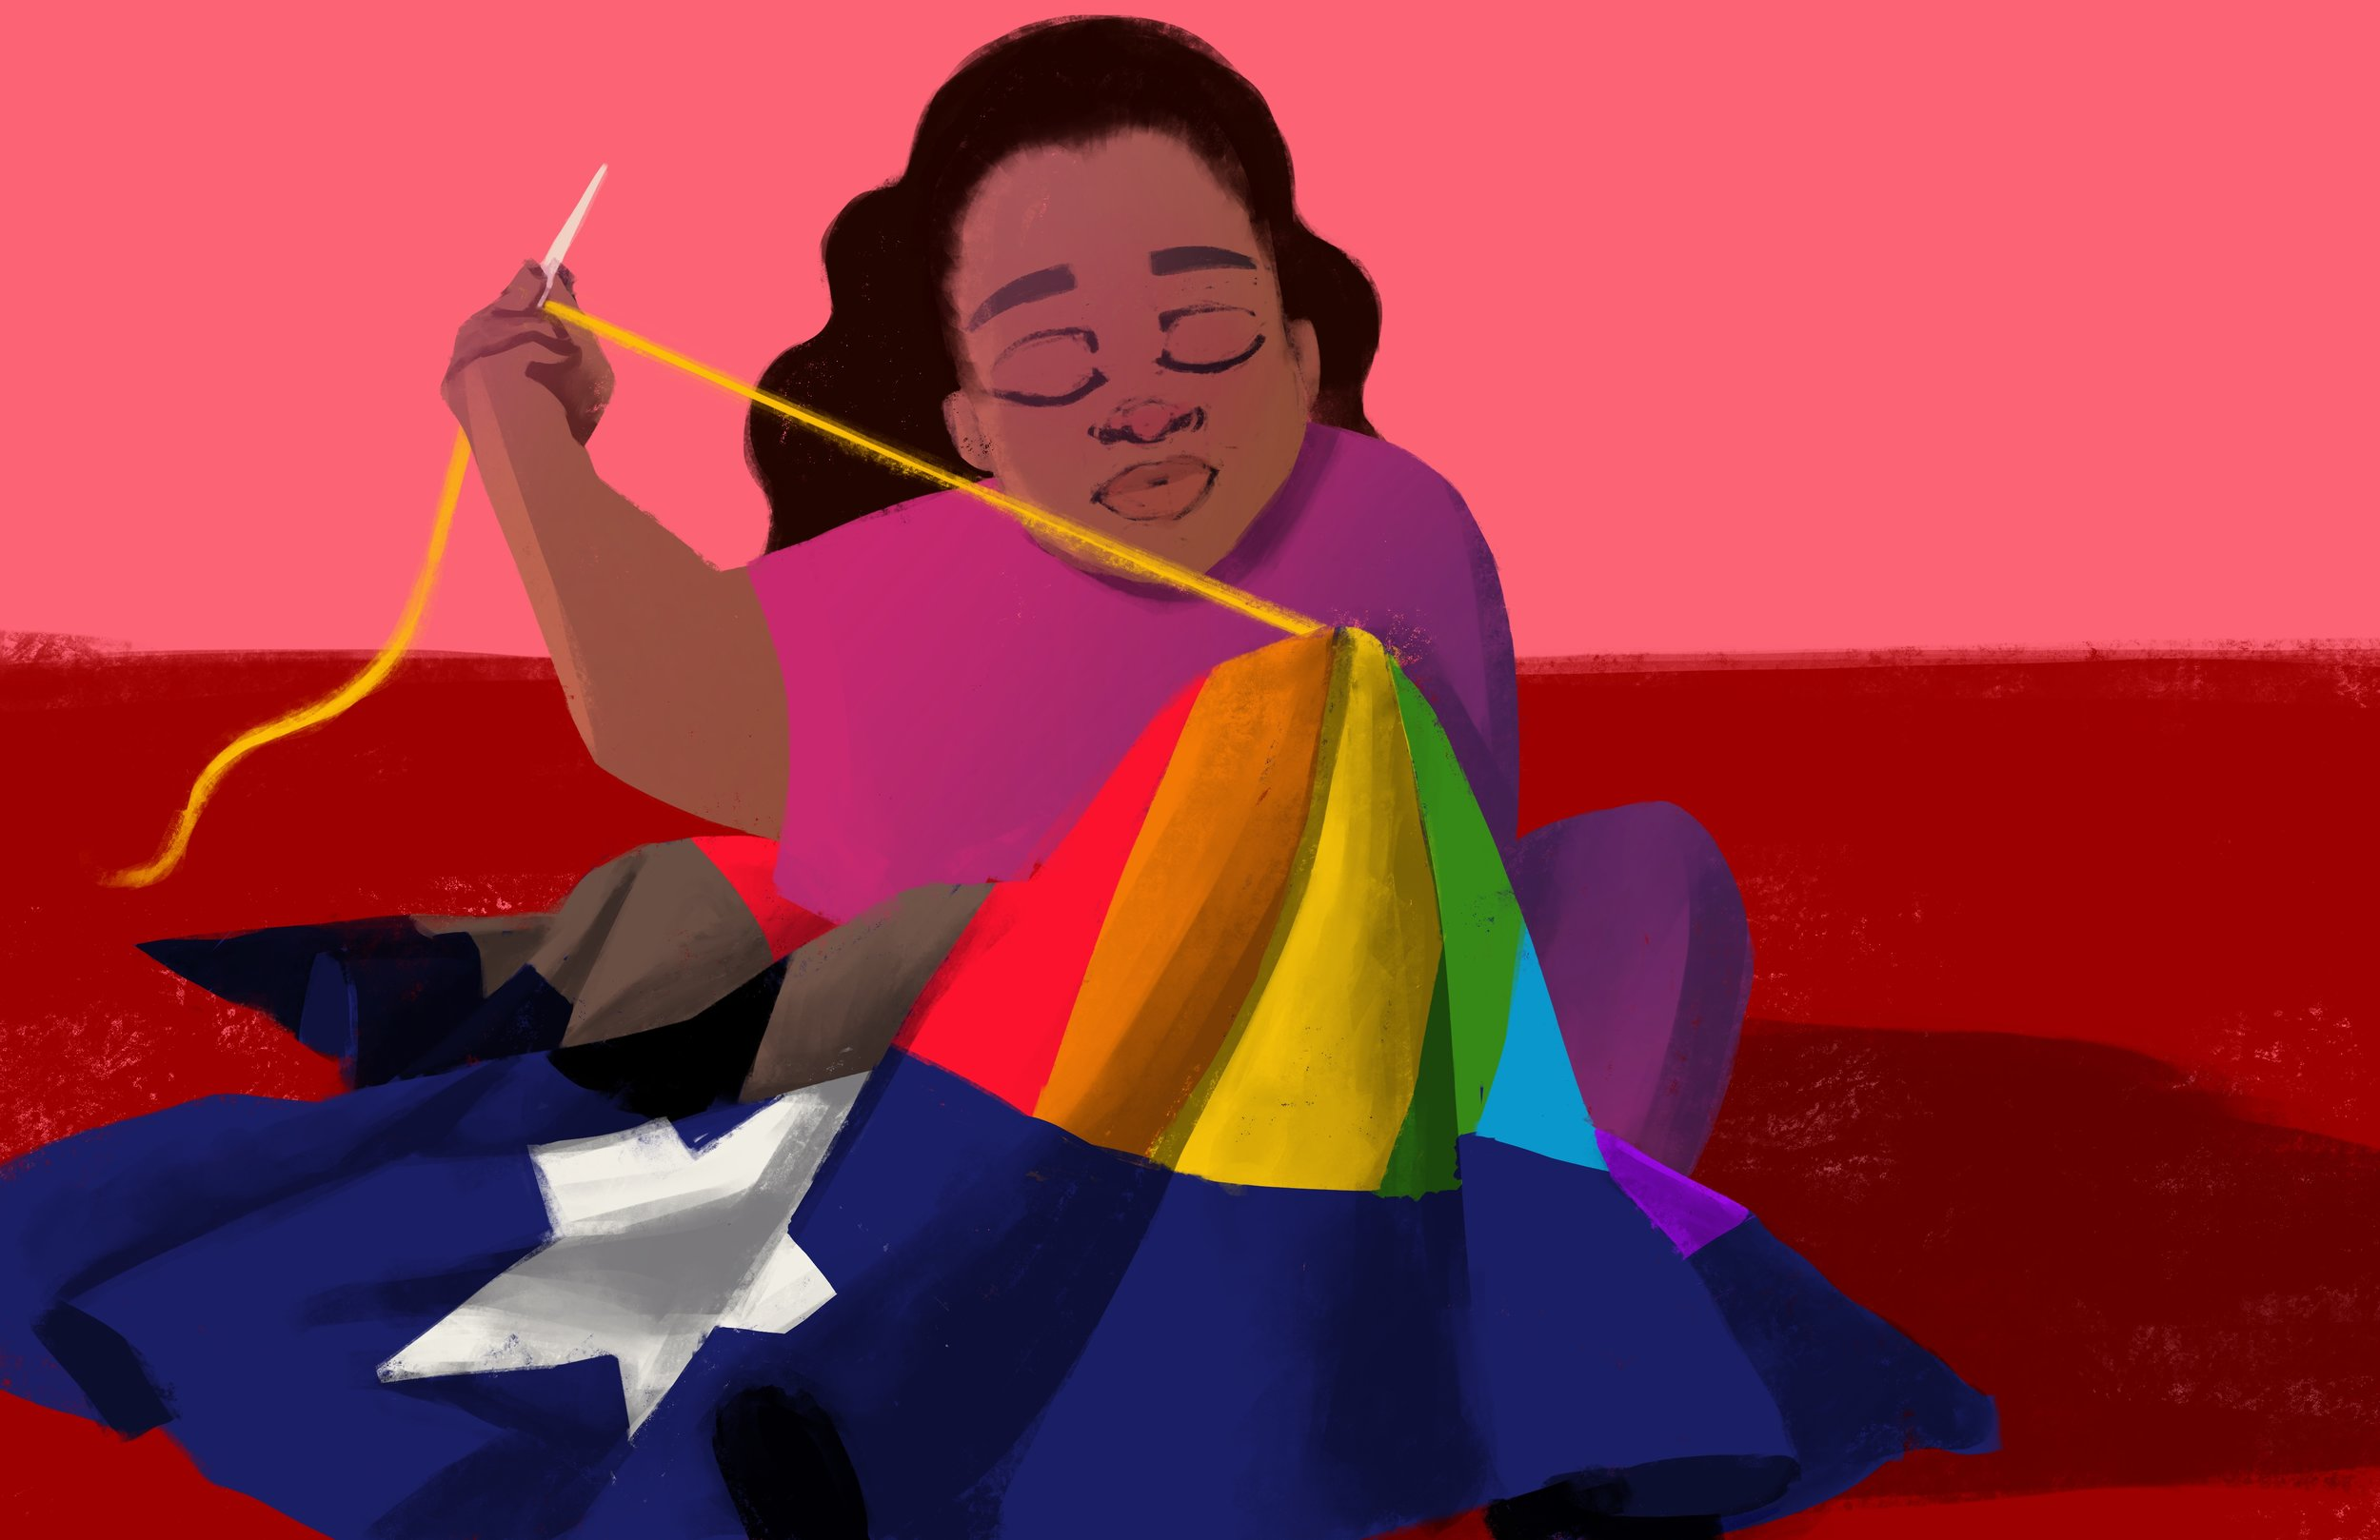 QTPOC Are Working Hard for Change in Texas. Our Lives Are Not Punchlines for Clicks